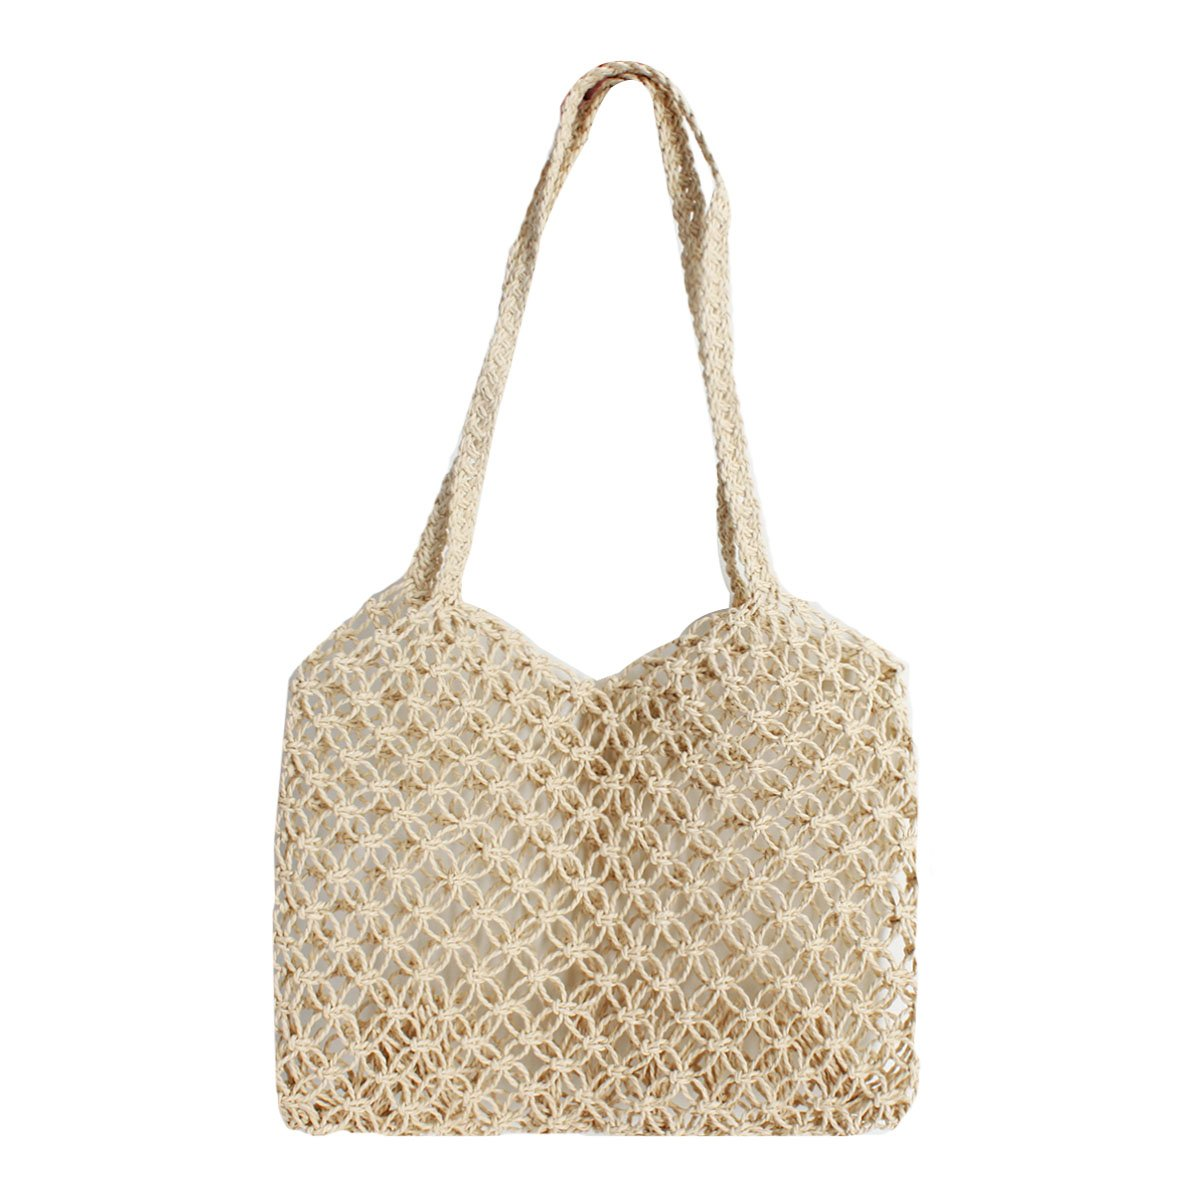 Beige Queena Straw Woven Tote Bag Women Large Capacity Handbag Beach Party Shoulder Purse